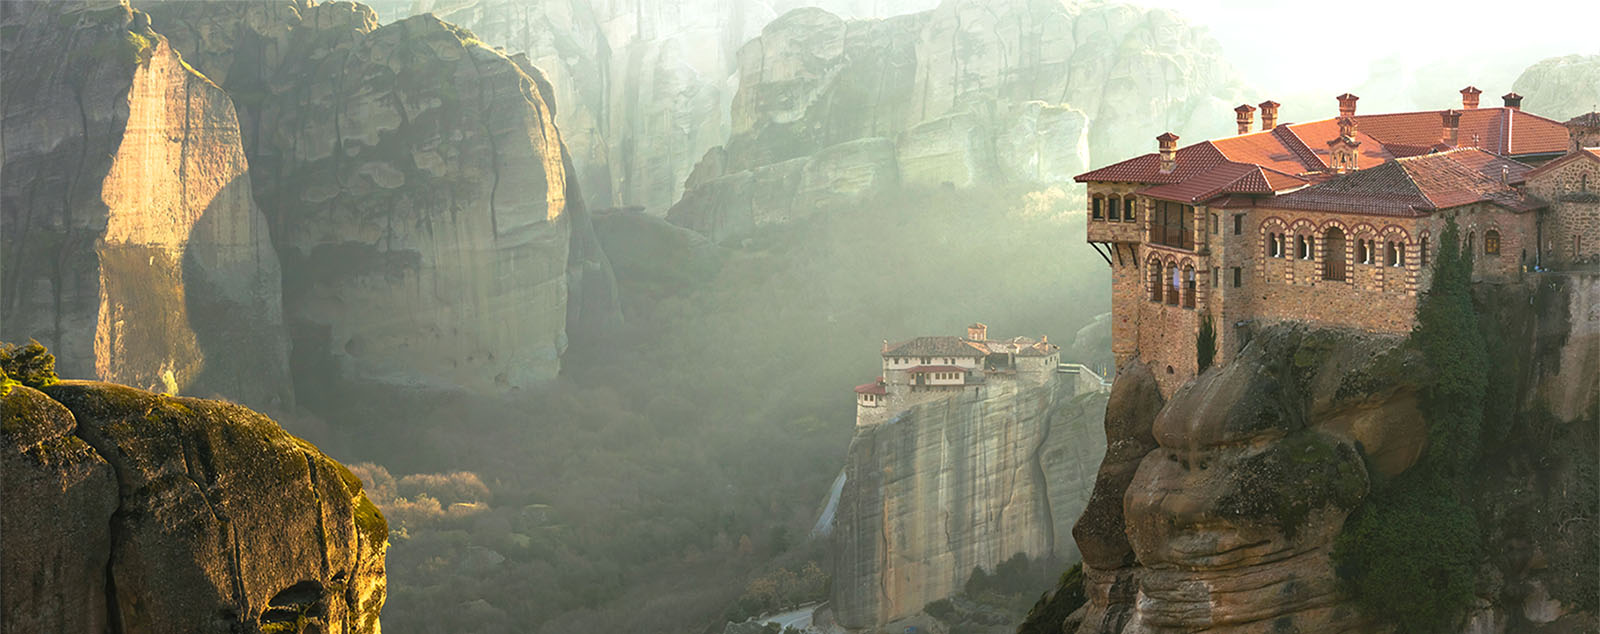 Two monumental monasteries sitting on top huge pillars of rock